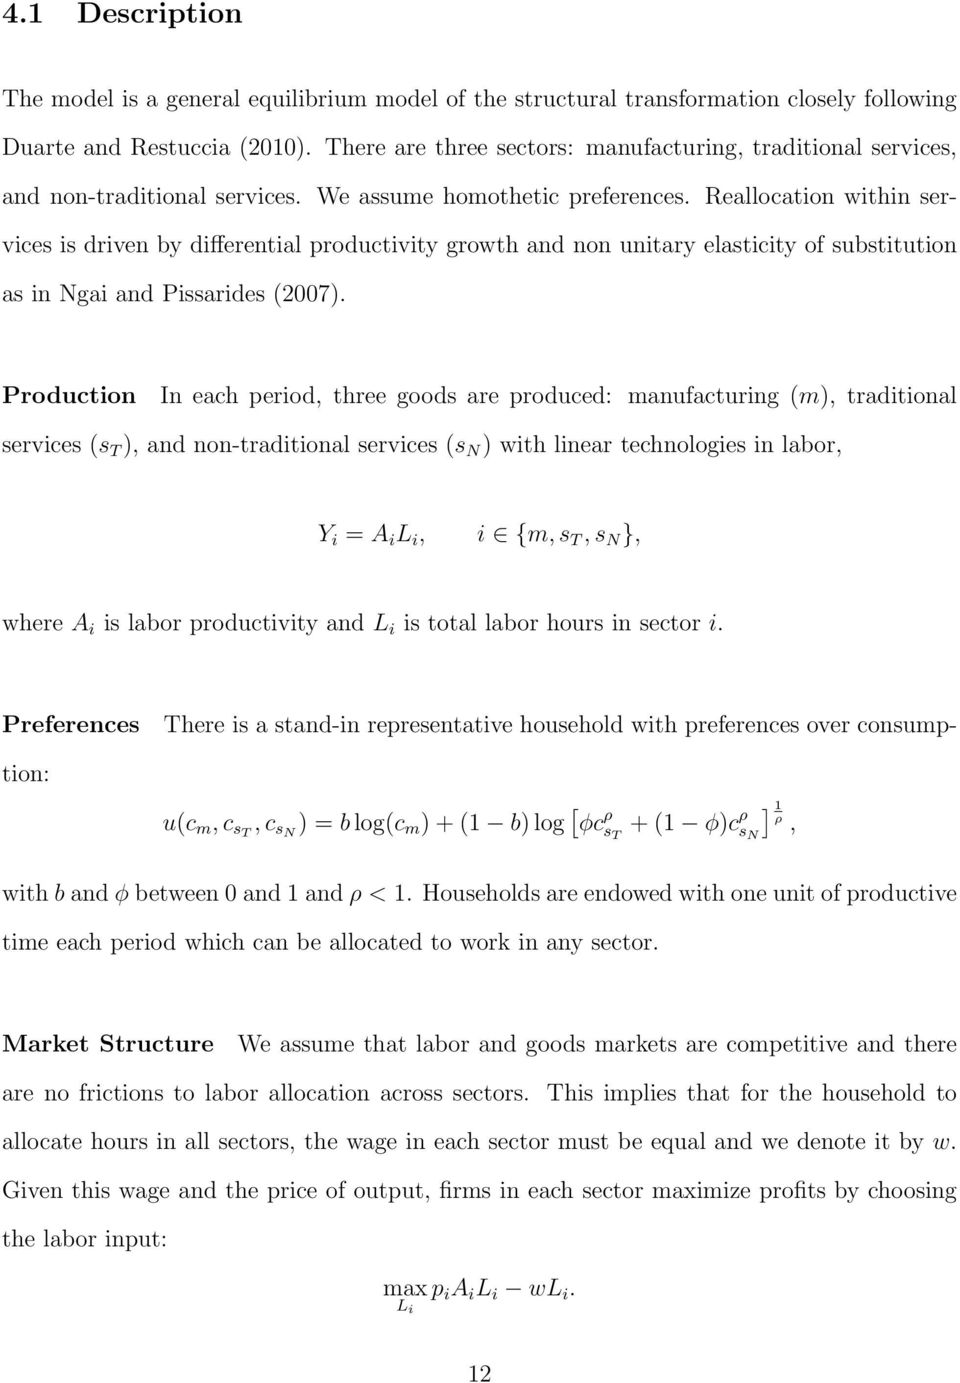 Reallocation within services is driven by differential productivity growth and non unitary elasticity of substitution as in Ngai and Pissarides (2007).